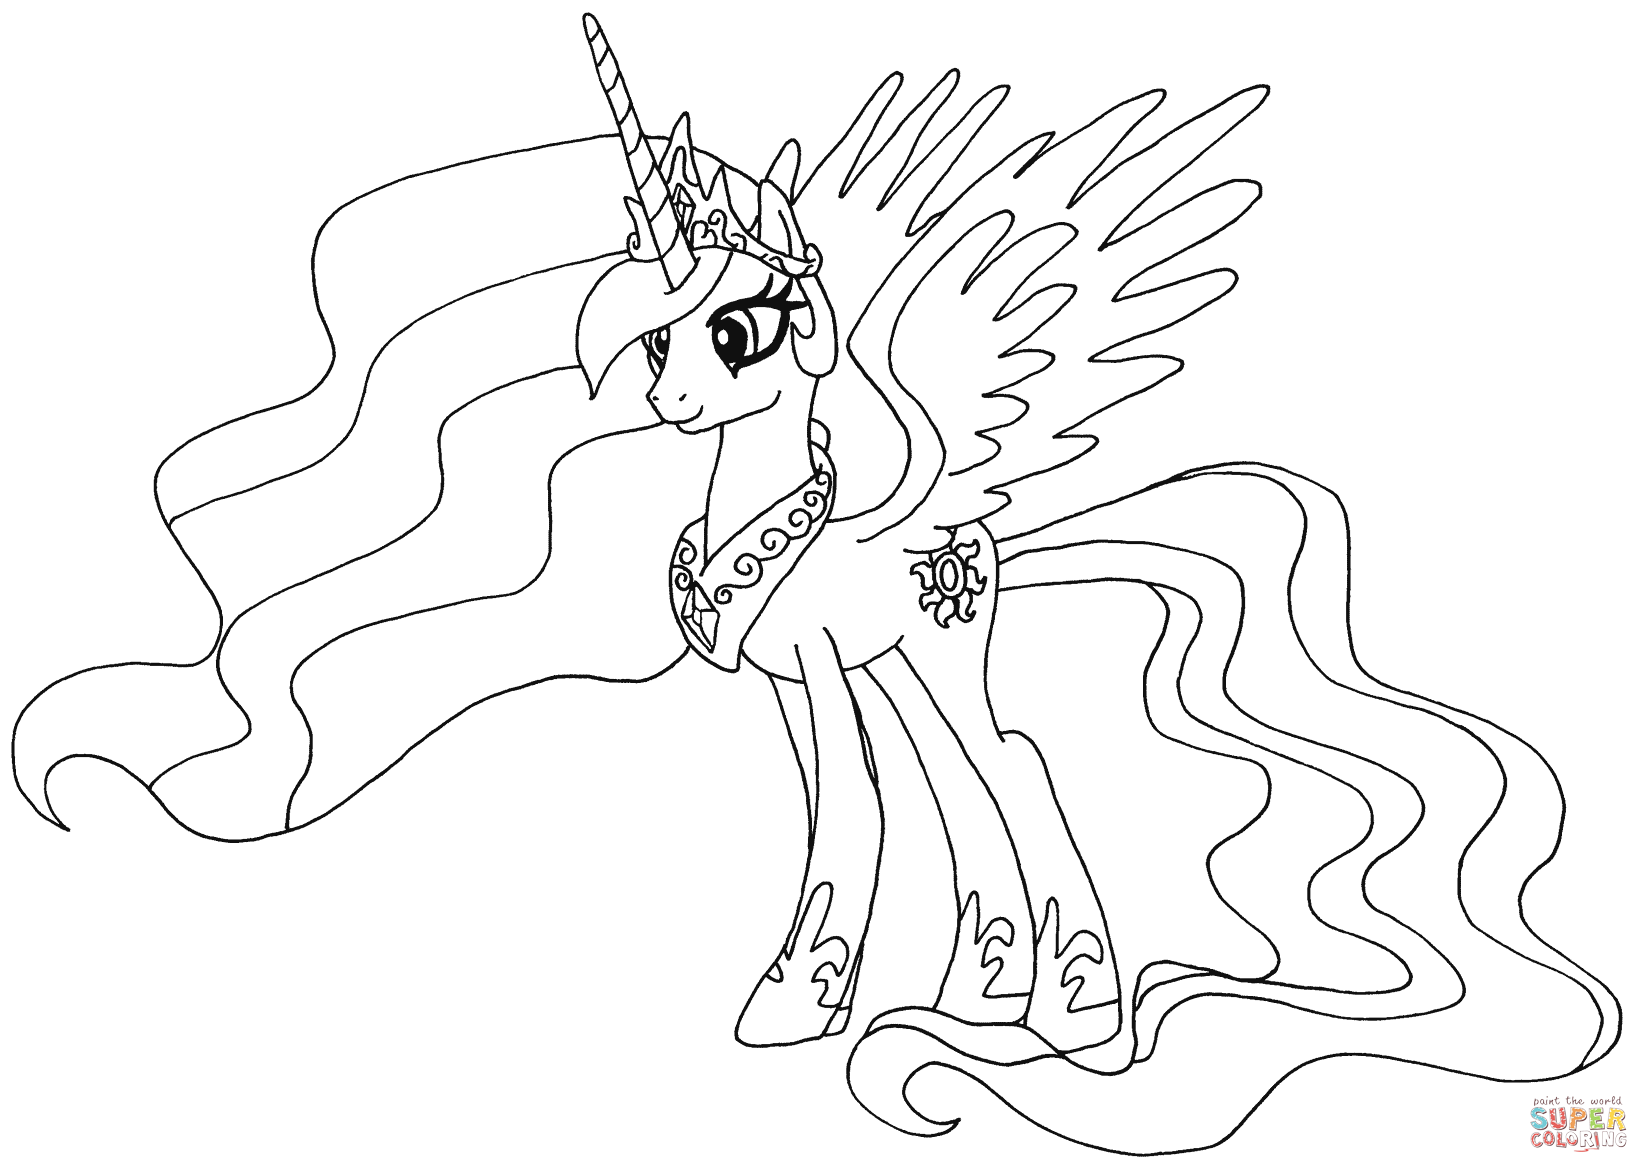 Coloring Pages Princess Pony : Princess celestia from my little pony coloring page